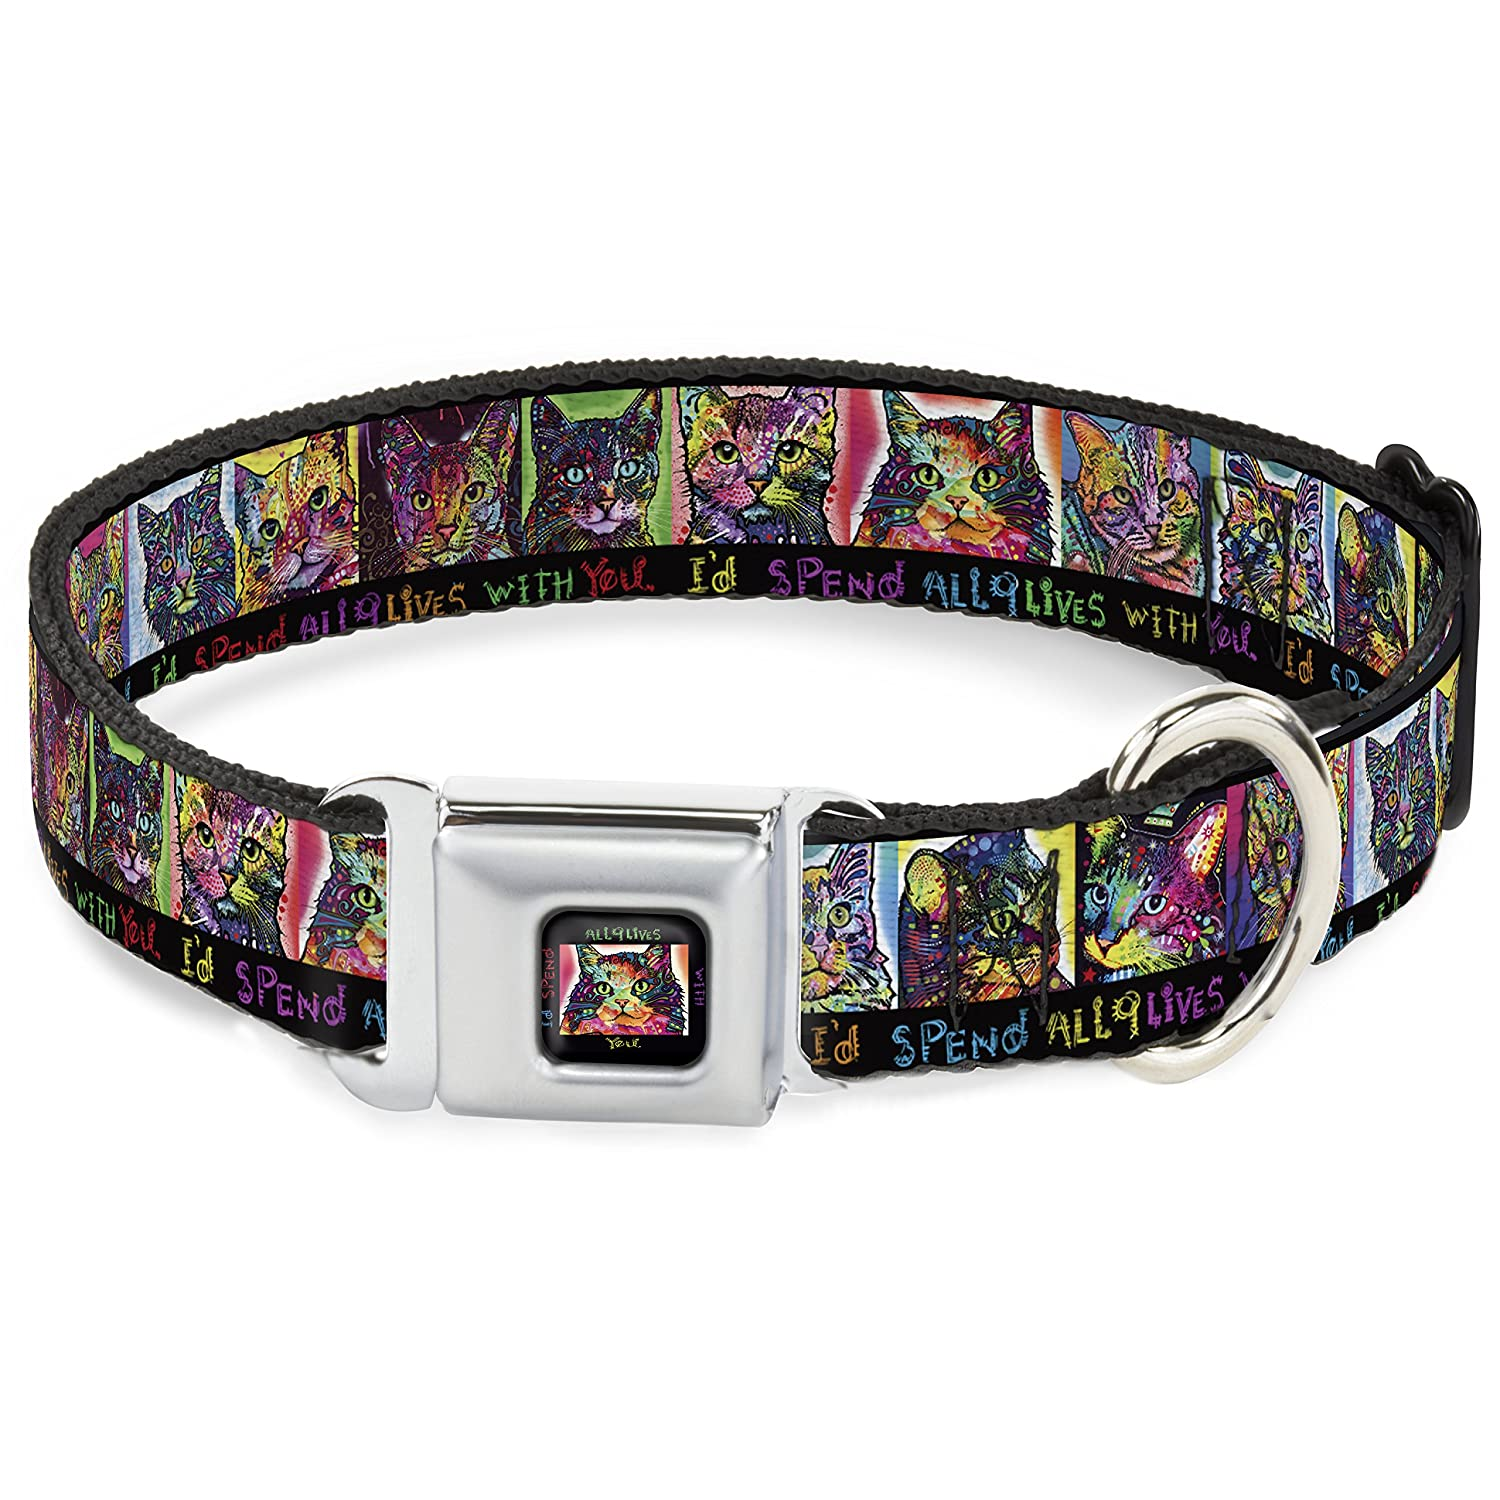 Buckle-Down Dc-Wal006-L ALC Cat Portraits I'd Spend All 9 Lives with You Dog Collar, Large, Black Multi color